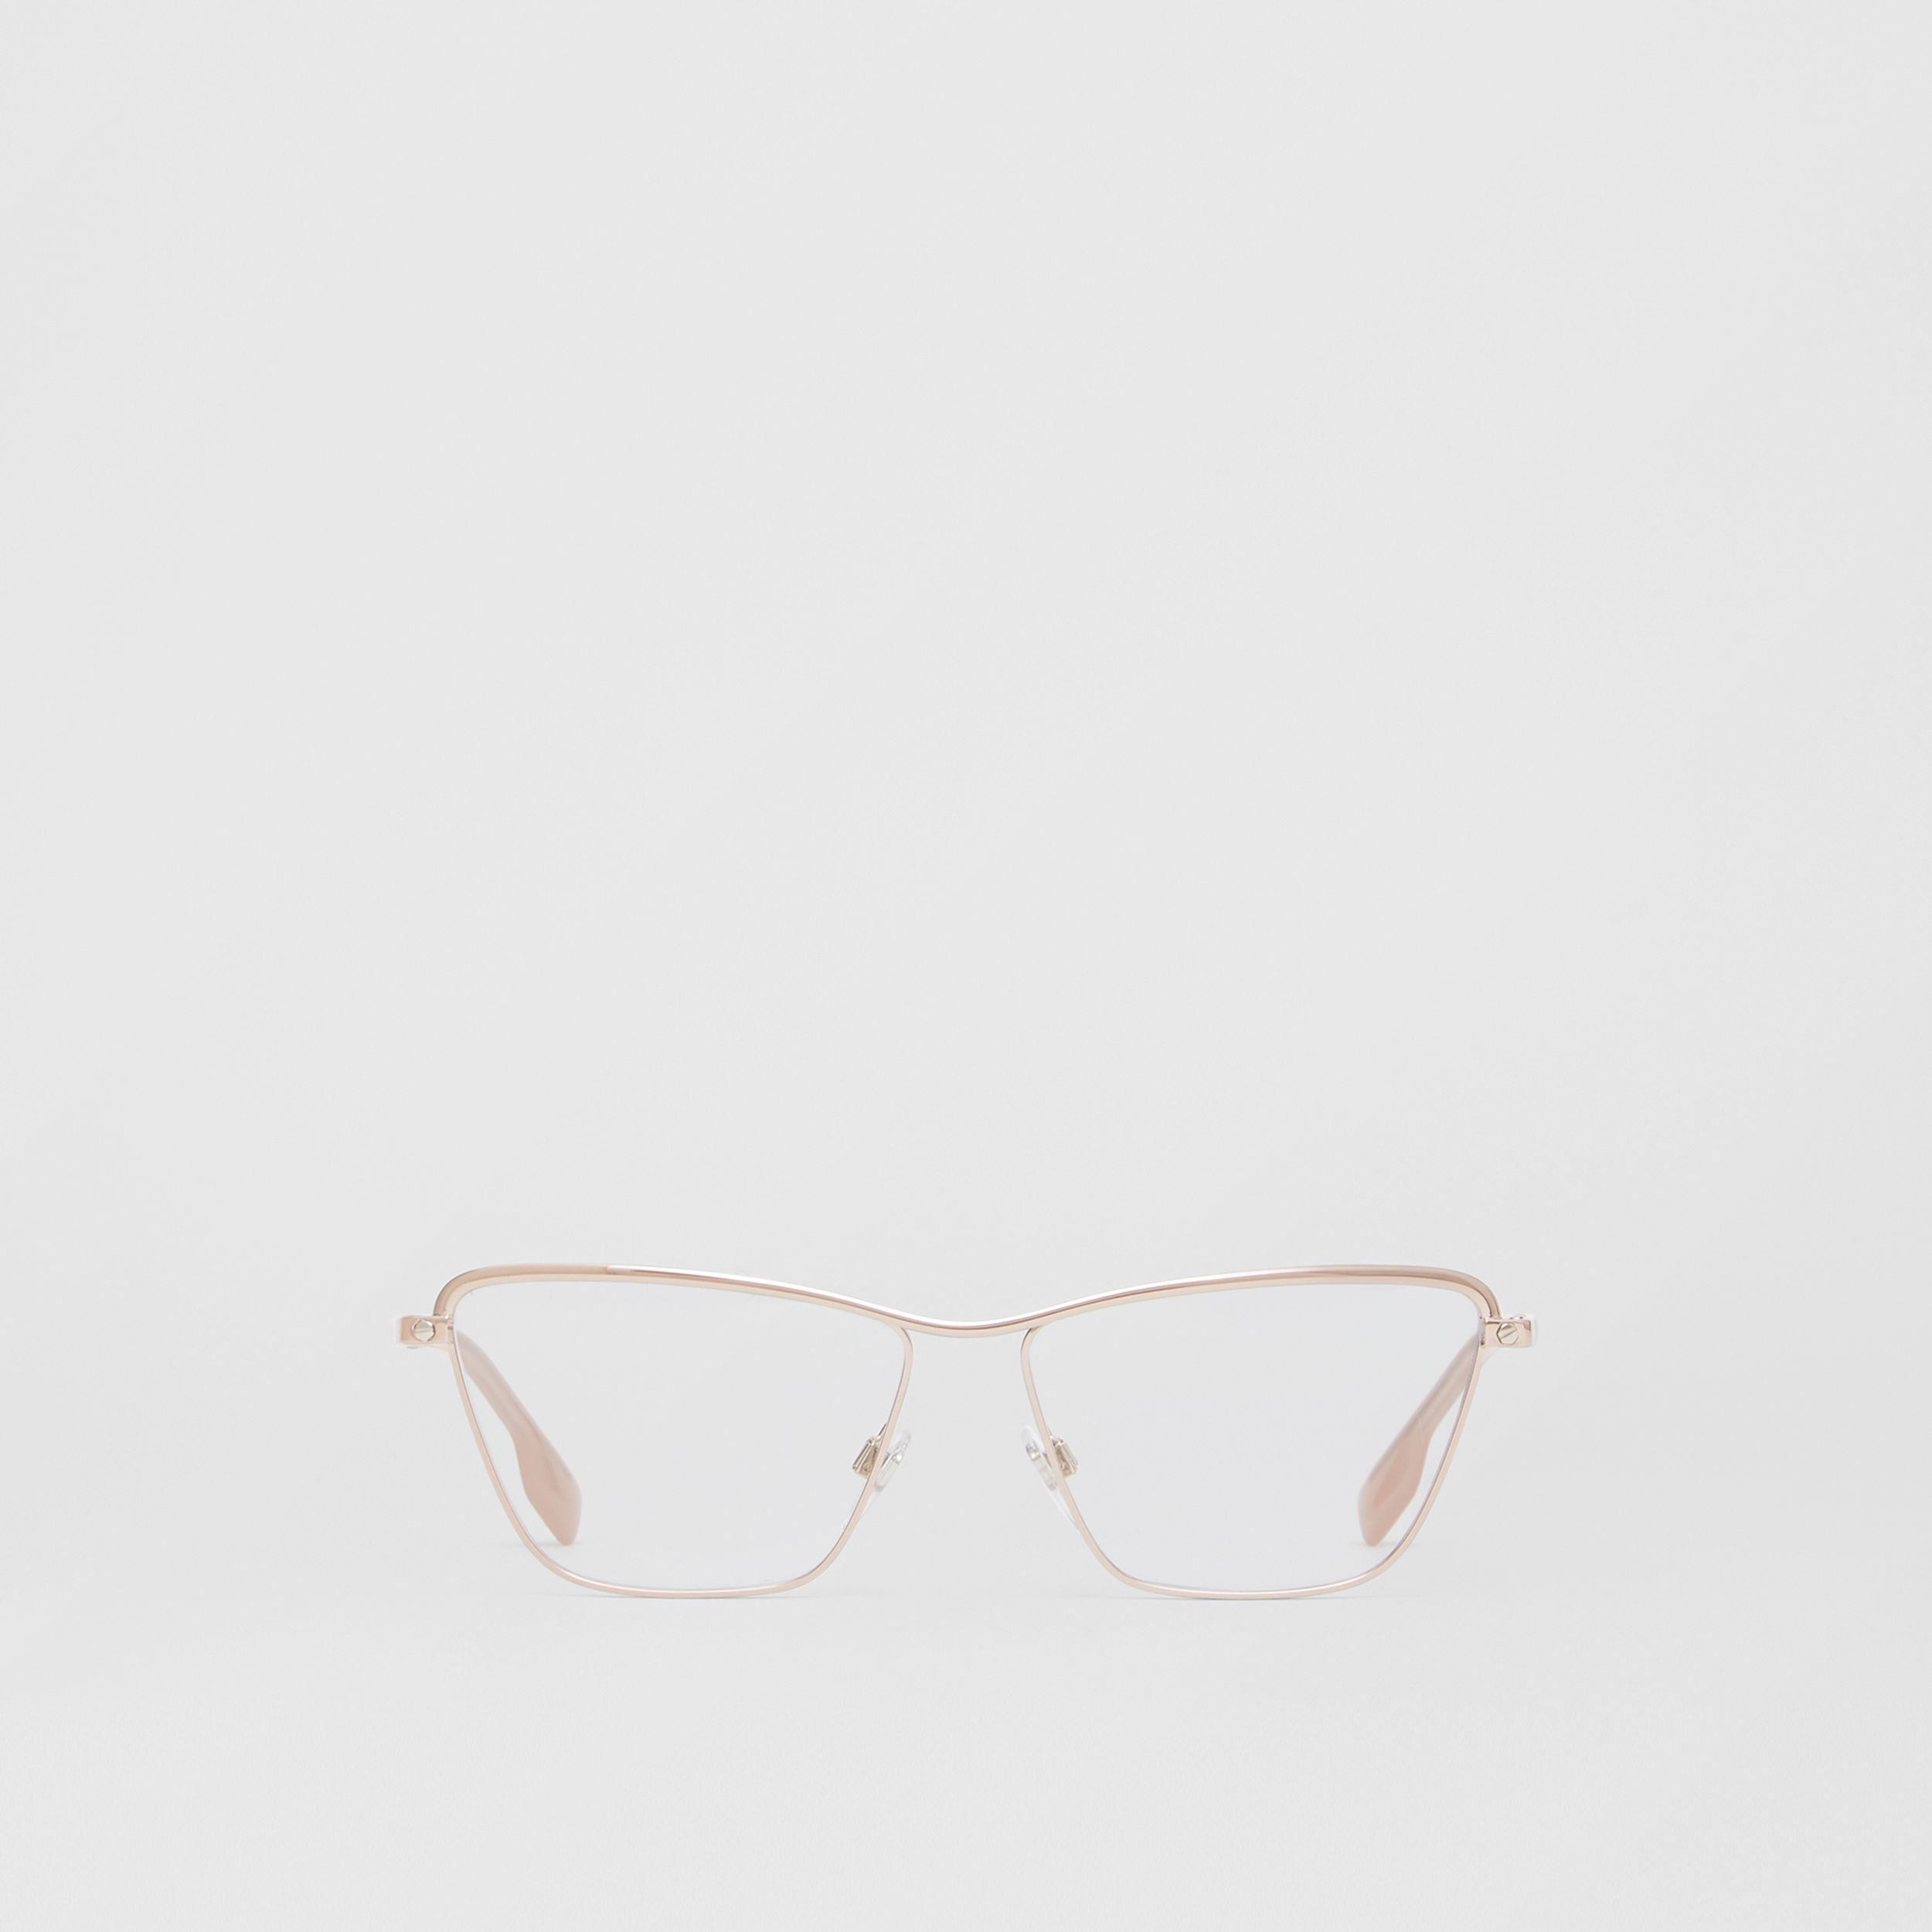 Rectangular Optical Frames in Rose Gold - Women | Burberry - 1